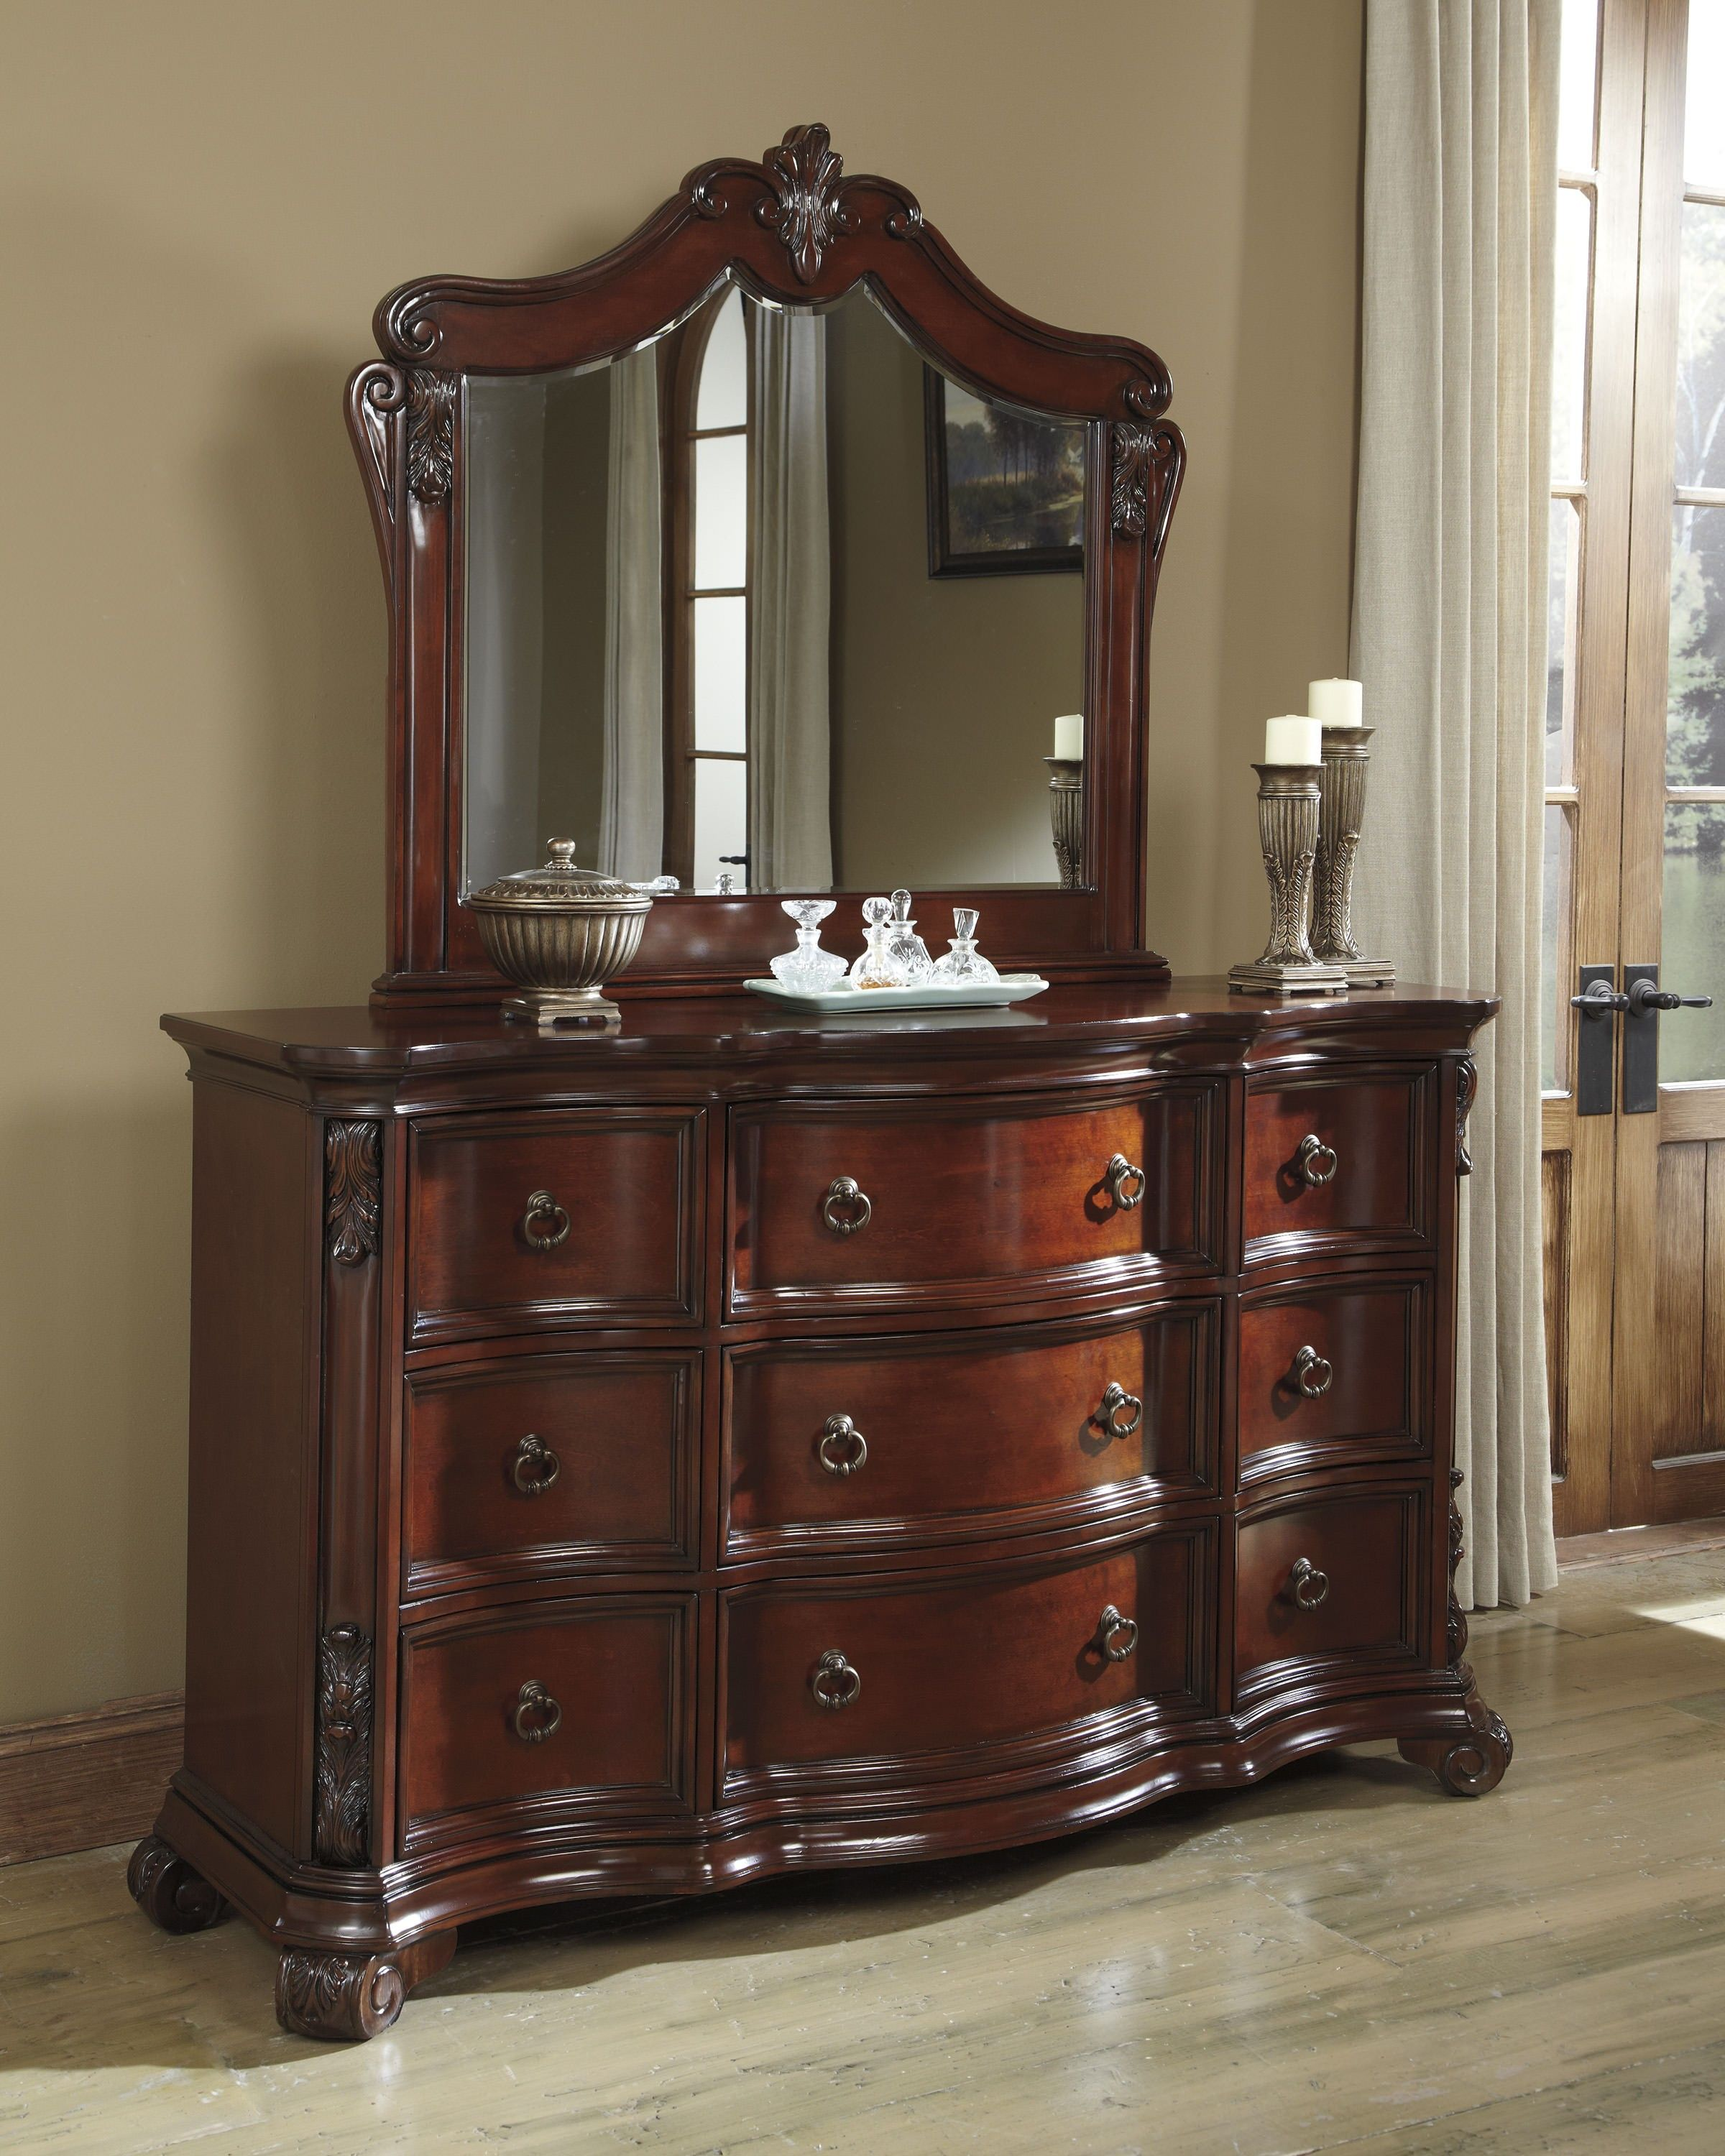 Ashley Furniture Bedroom Sets Discontinued : ashley, furniture, bedroom, discontinued, Martanny, Dresser, Mirror,, Furniture, Store,, Ashley